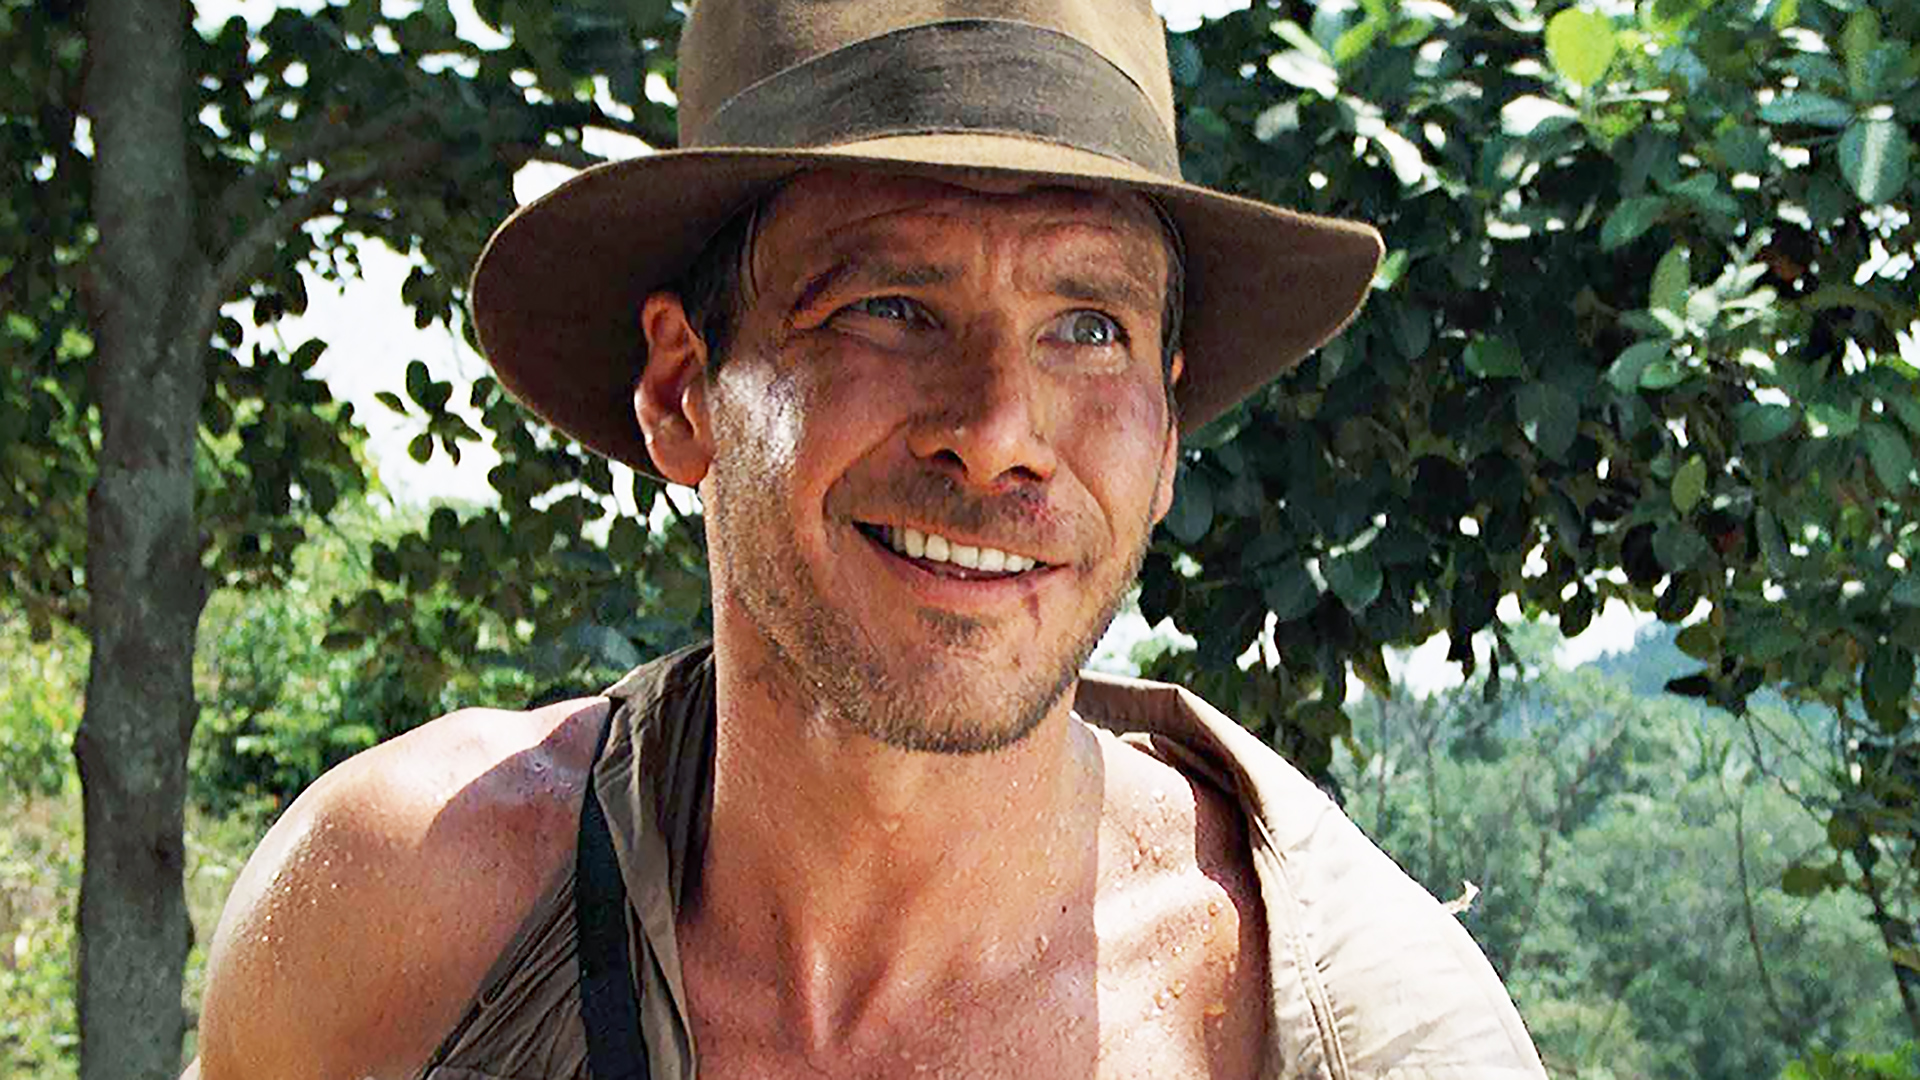 A handsome, young Harrison Ford weirdly smiling while dressed in his Indiana Jones garb